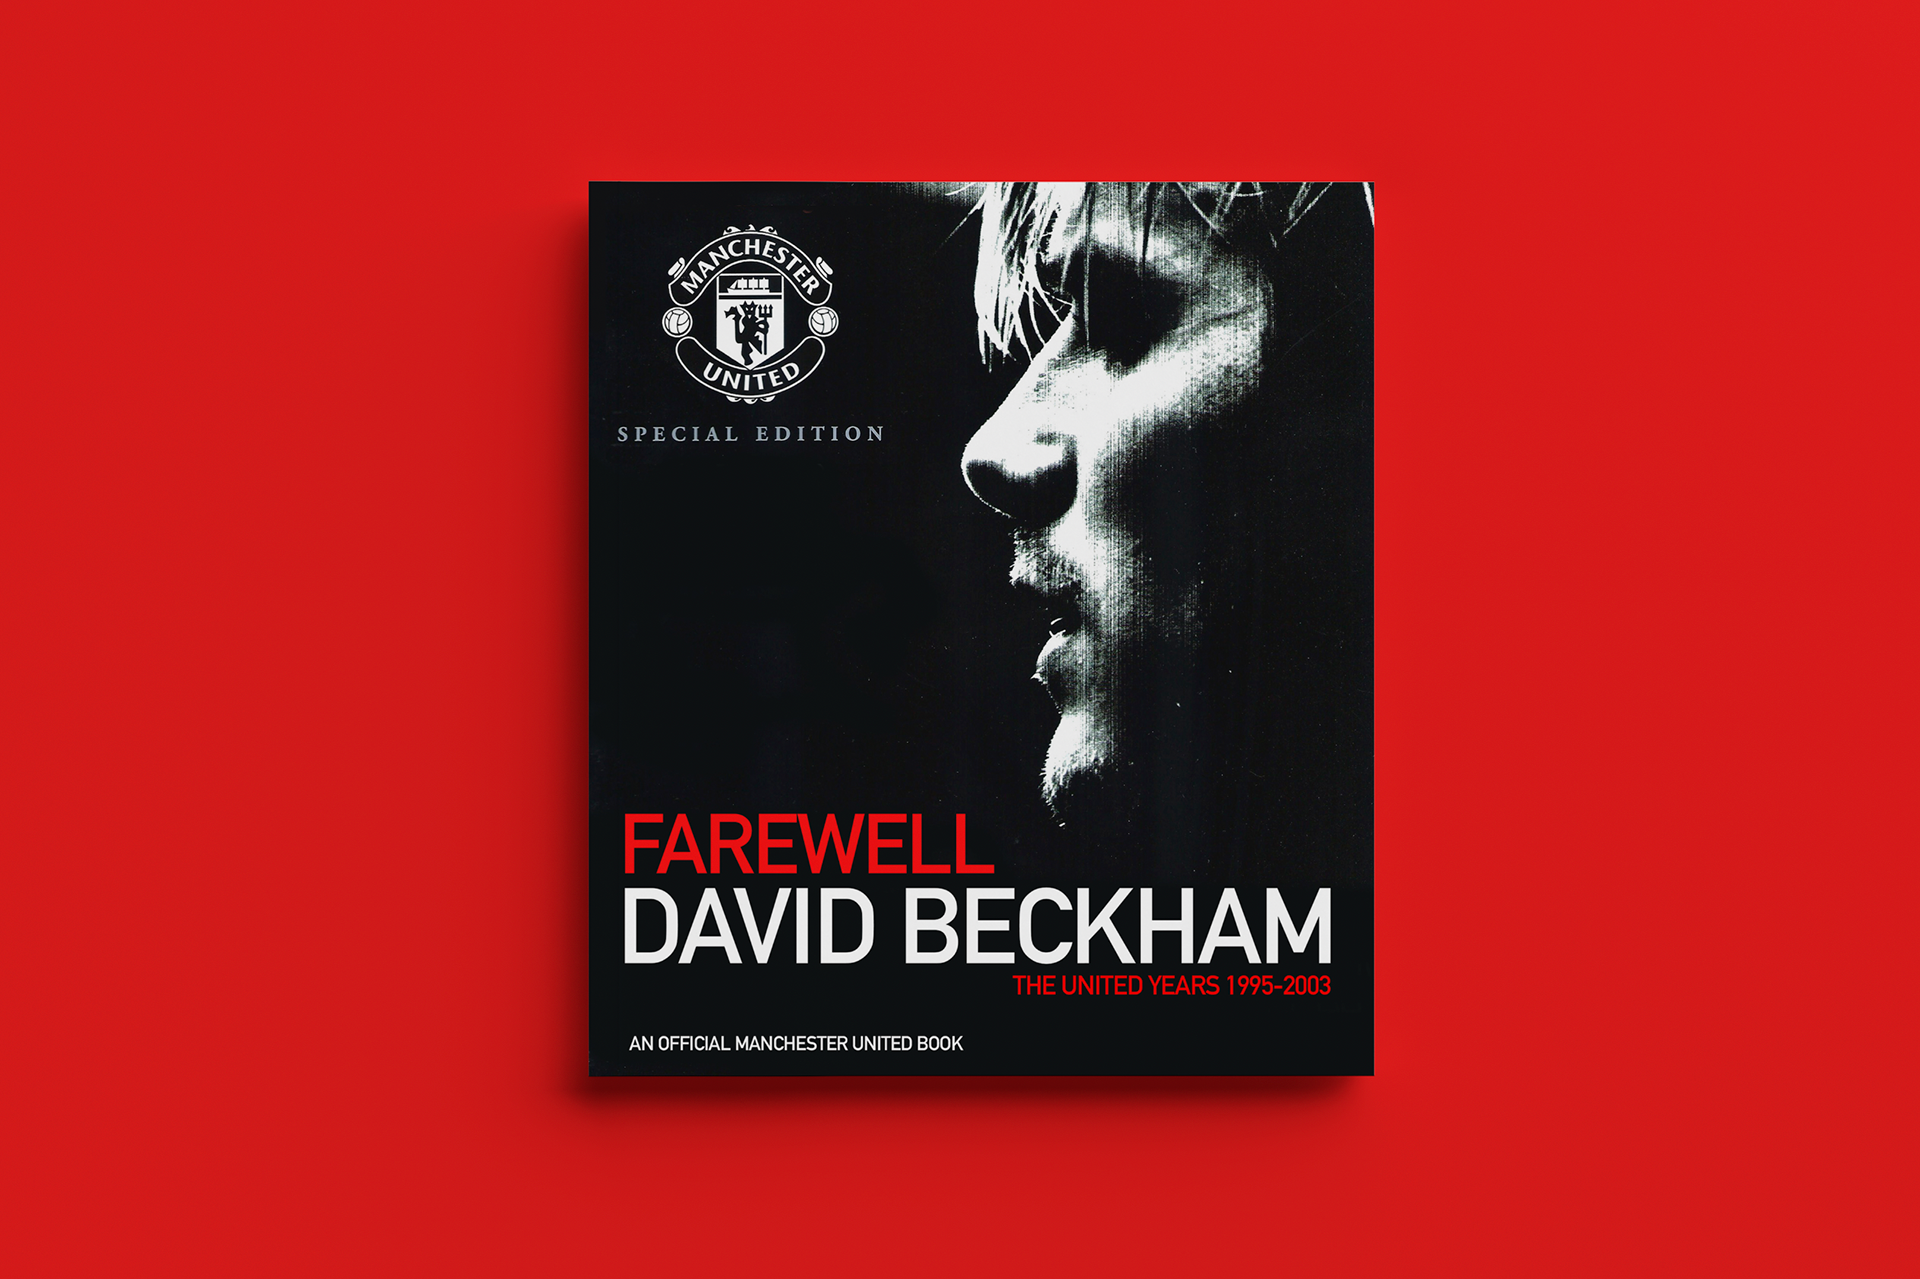 Hicks Design Manchester United Art Director